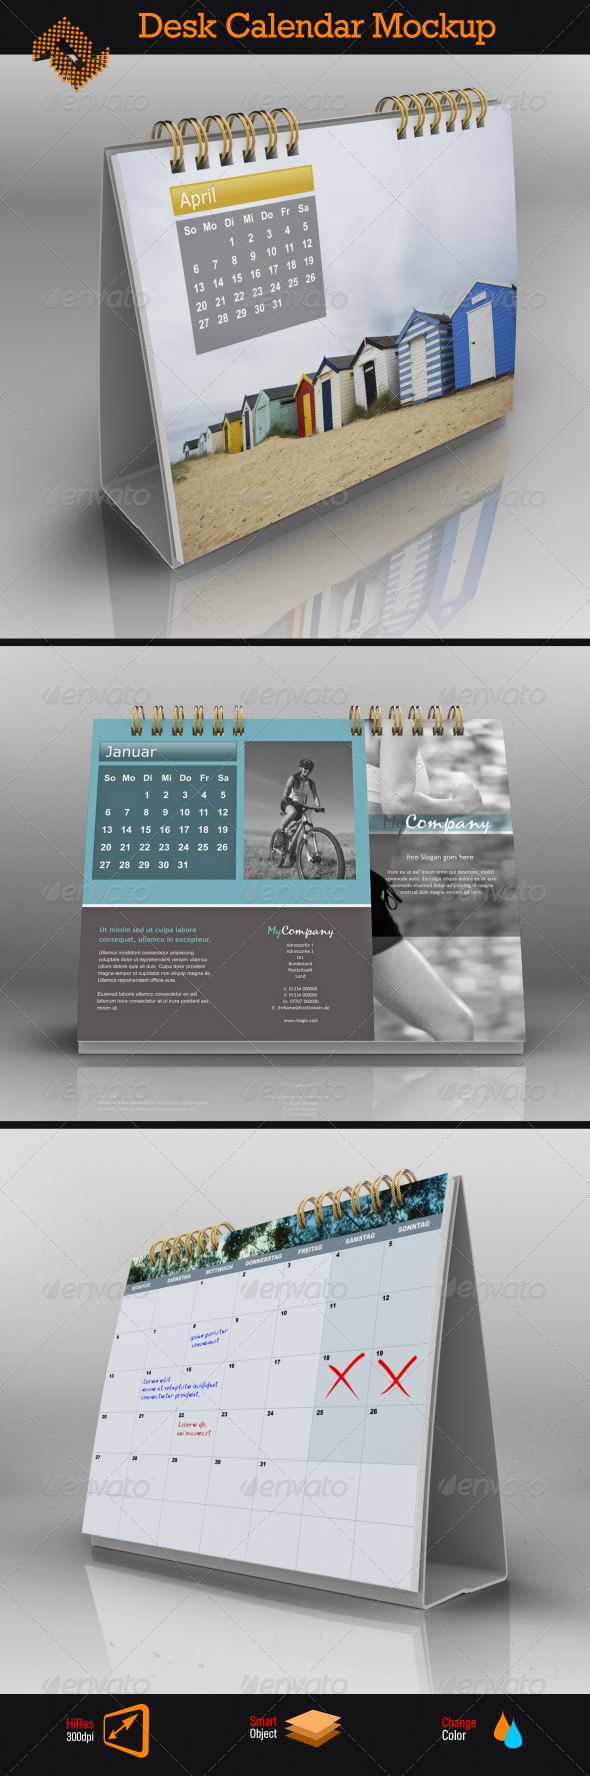 Table Calendar Mockup : Landscape desk calendar mock up by fusionhorn graphicriver